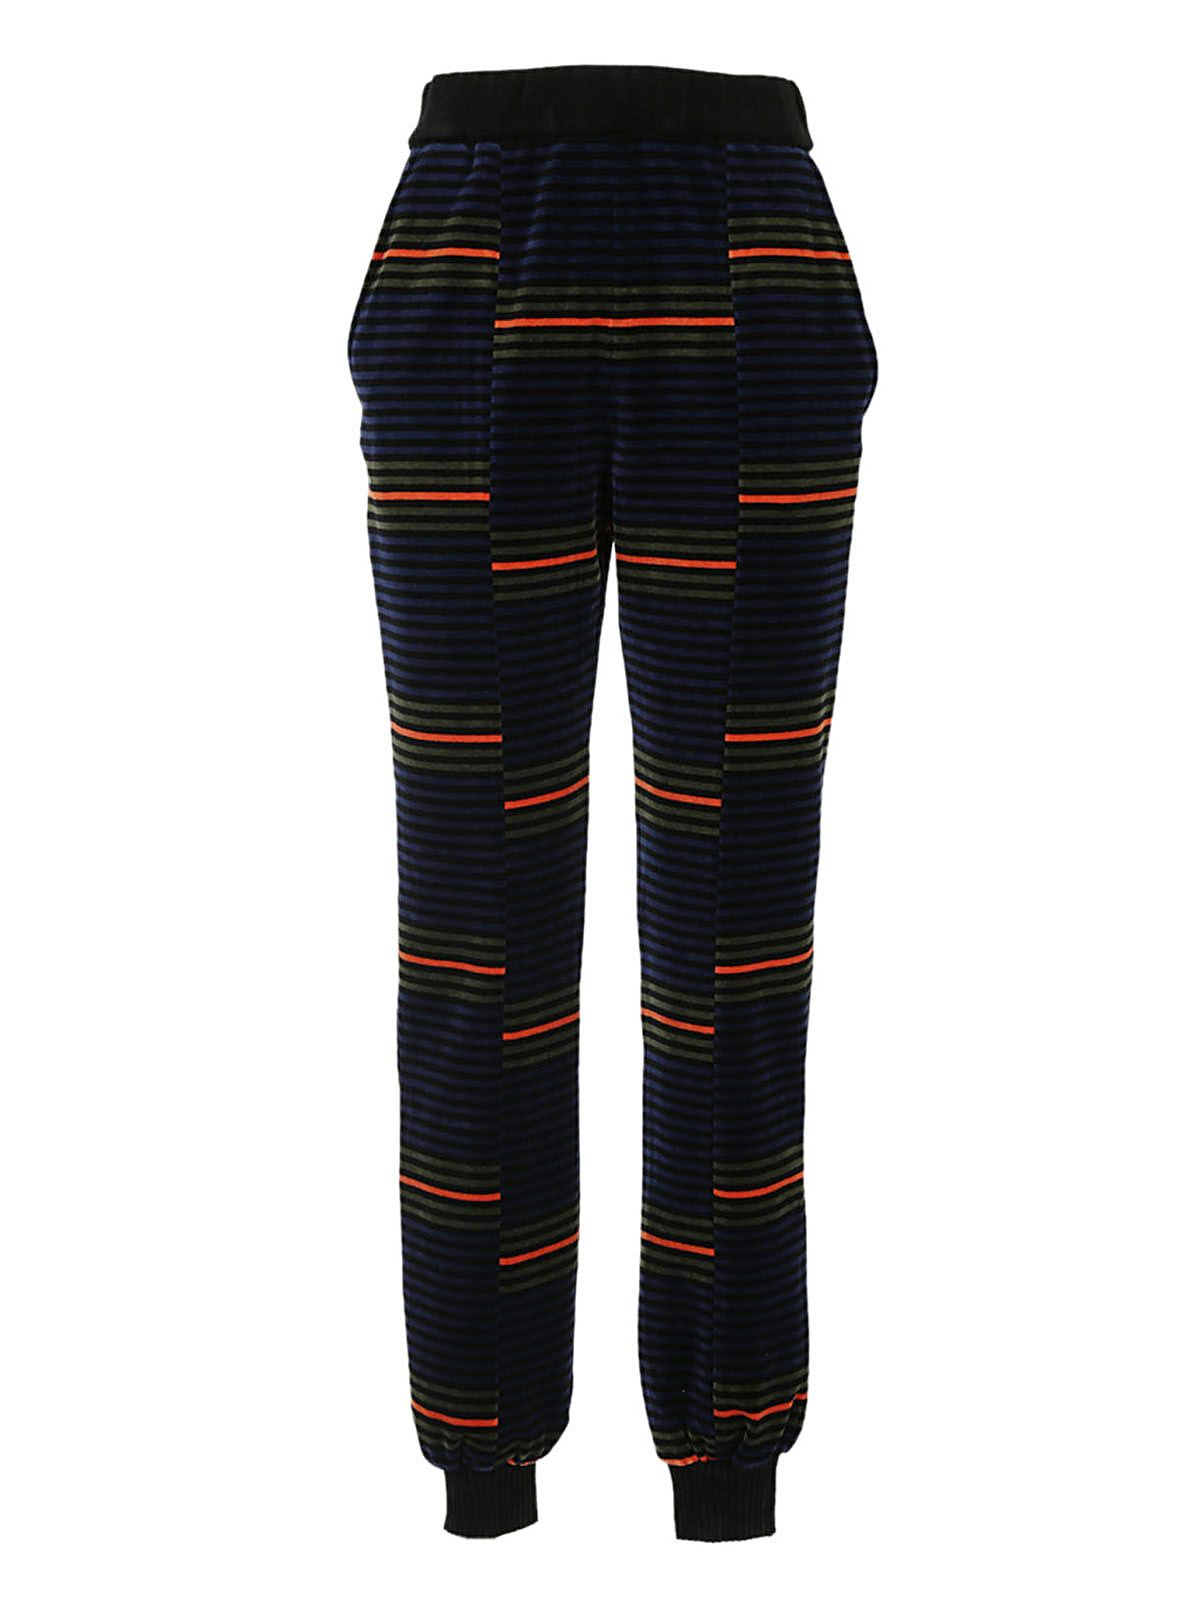 Sonia Rykiel Striped Track Pants